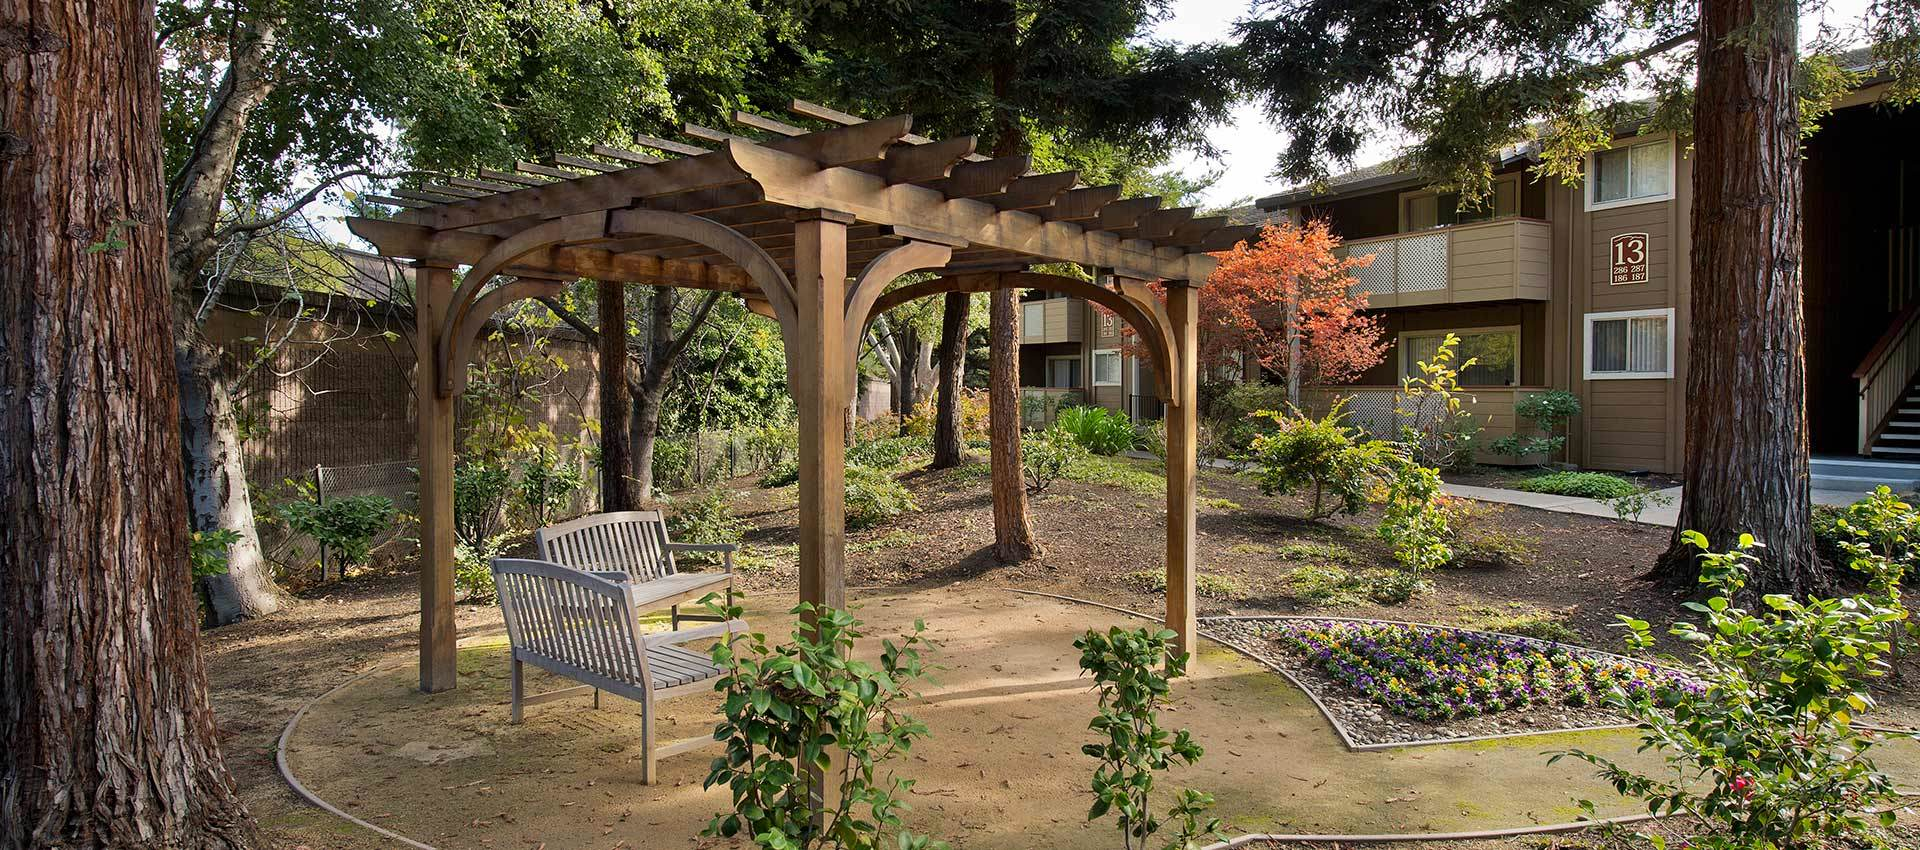 Gazebo at Shadow Oaks Apartment Homes in Cupertino